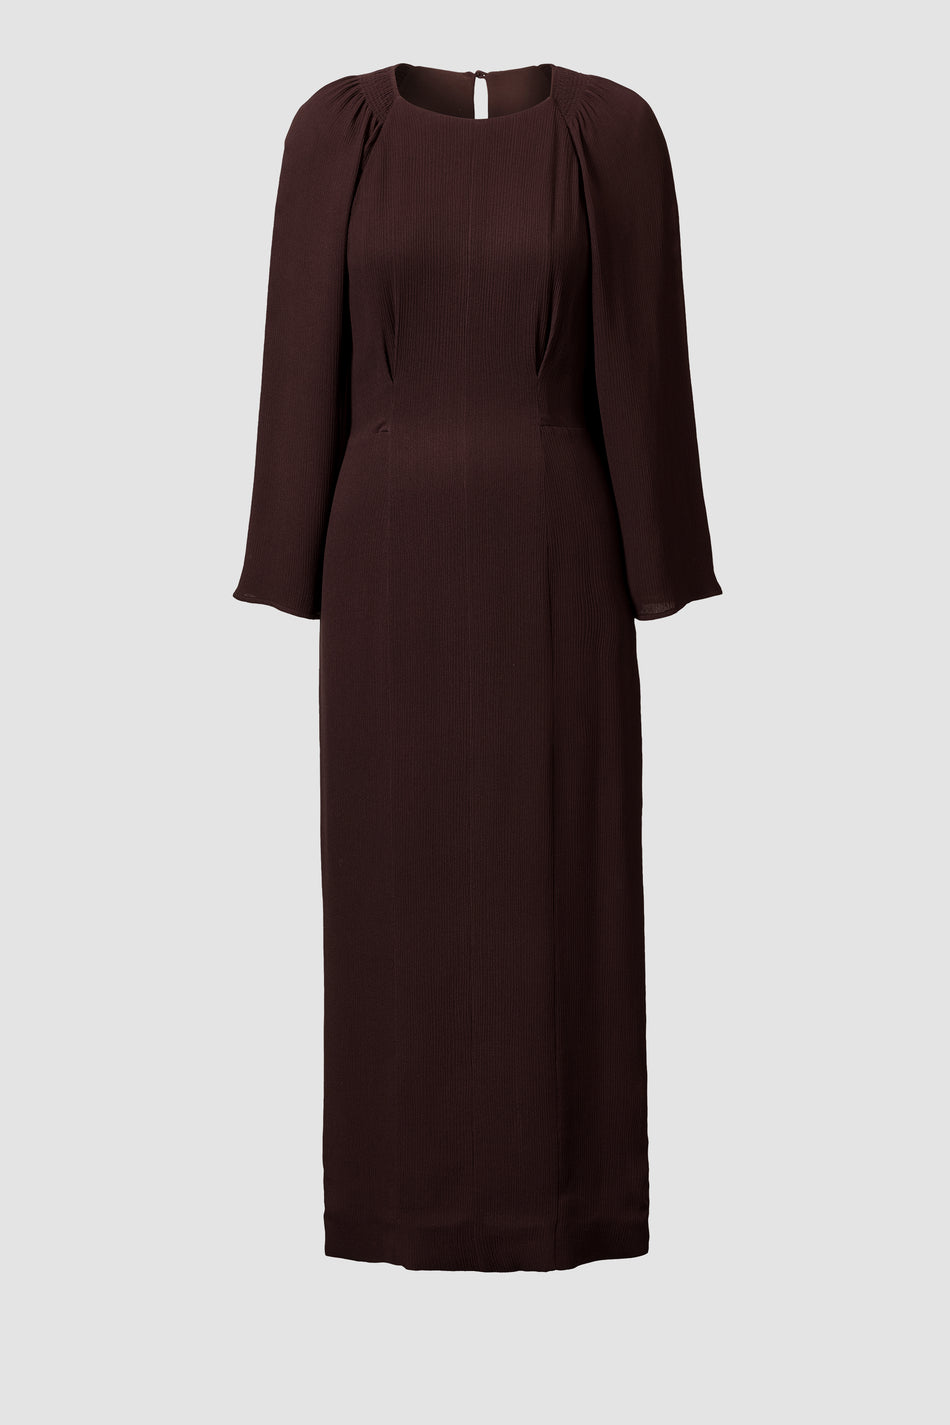 Hollie Silk Chocolate Brown Silk Dress